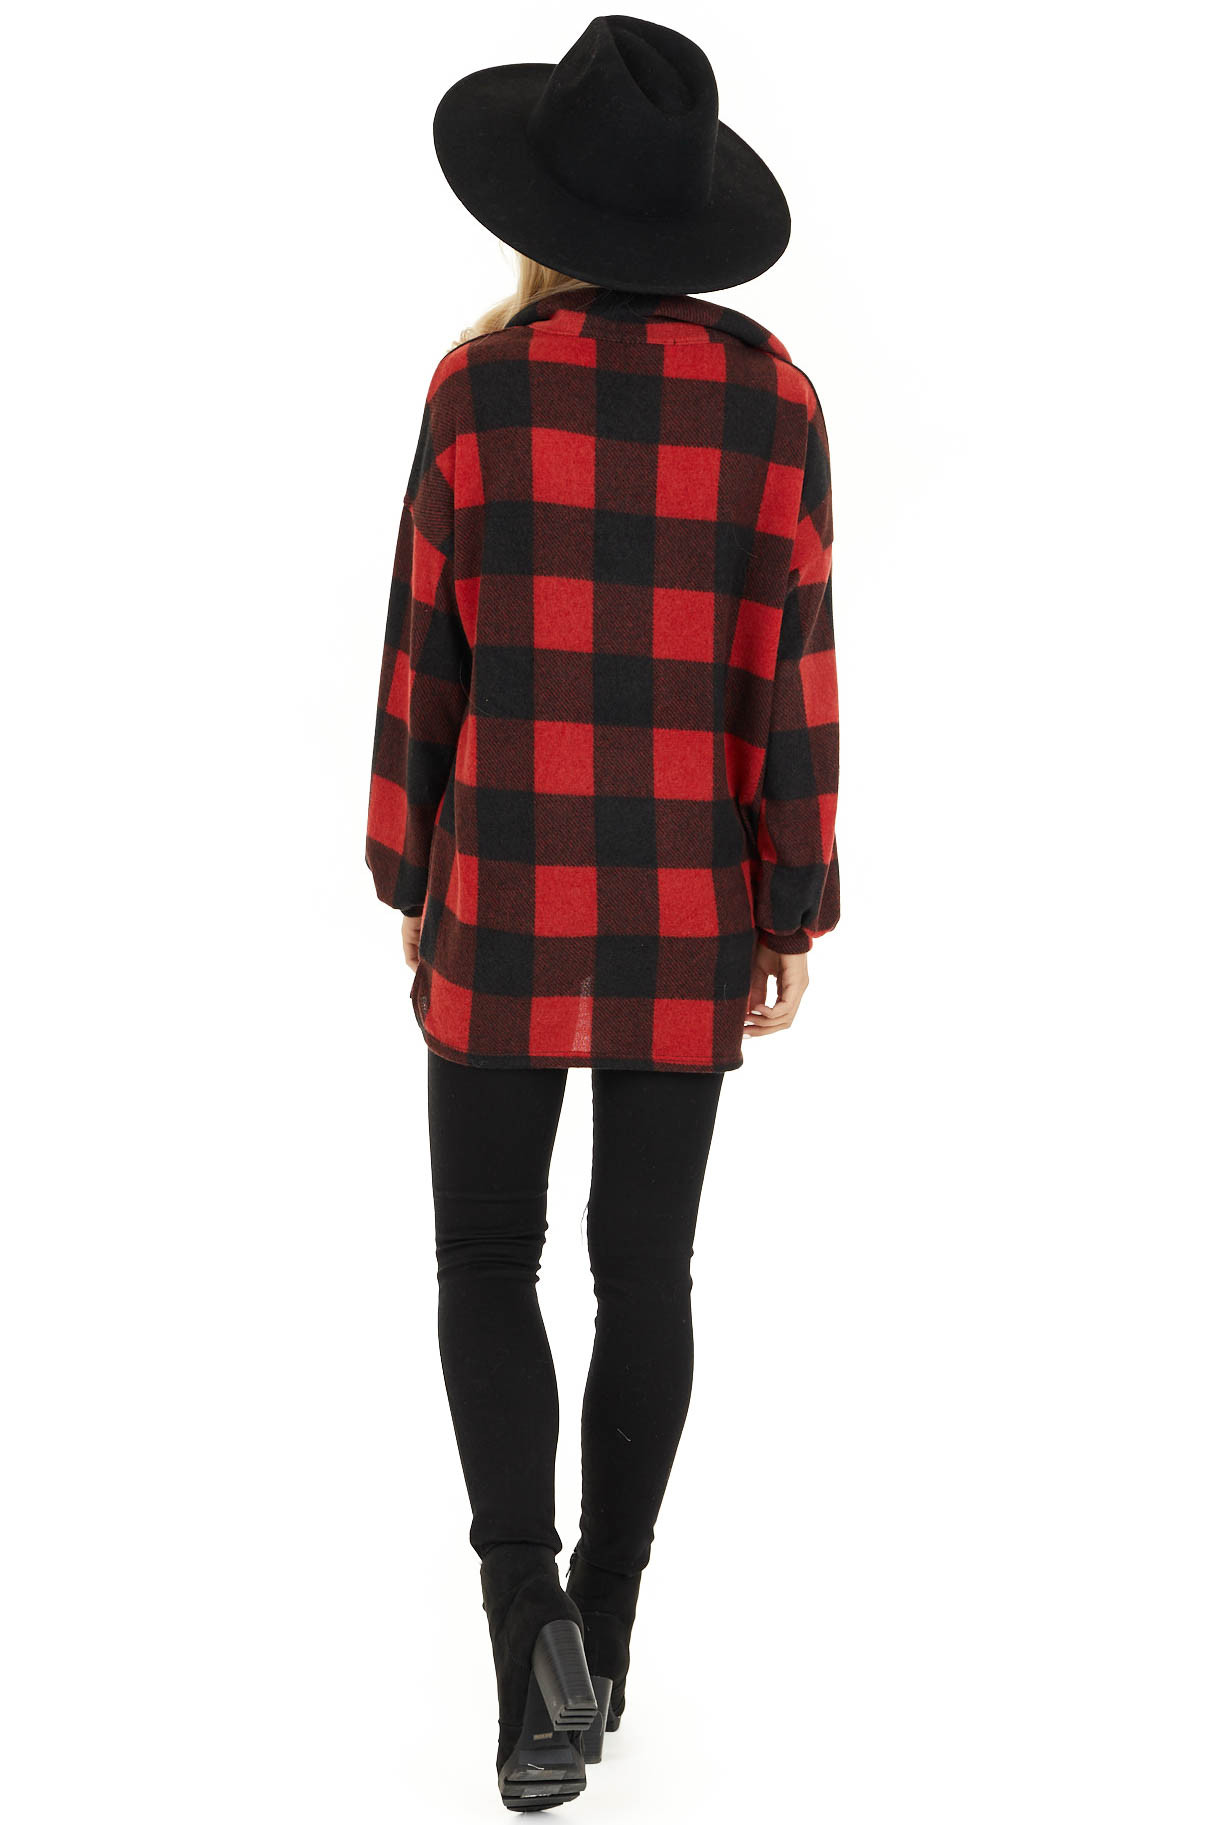 Candy Apple Red Buffalo Plaid Pullover Fleece Jacket back full body